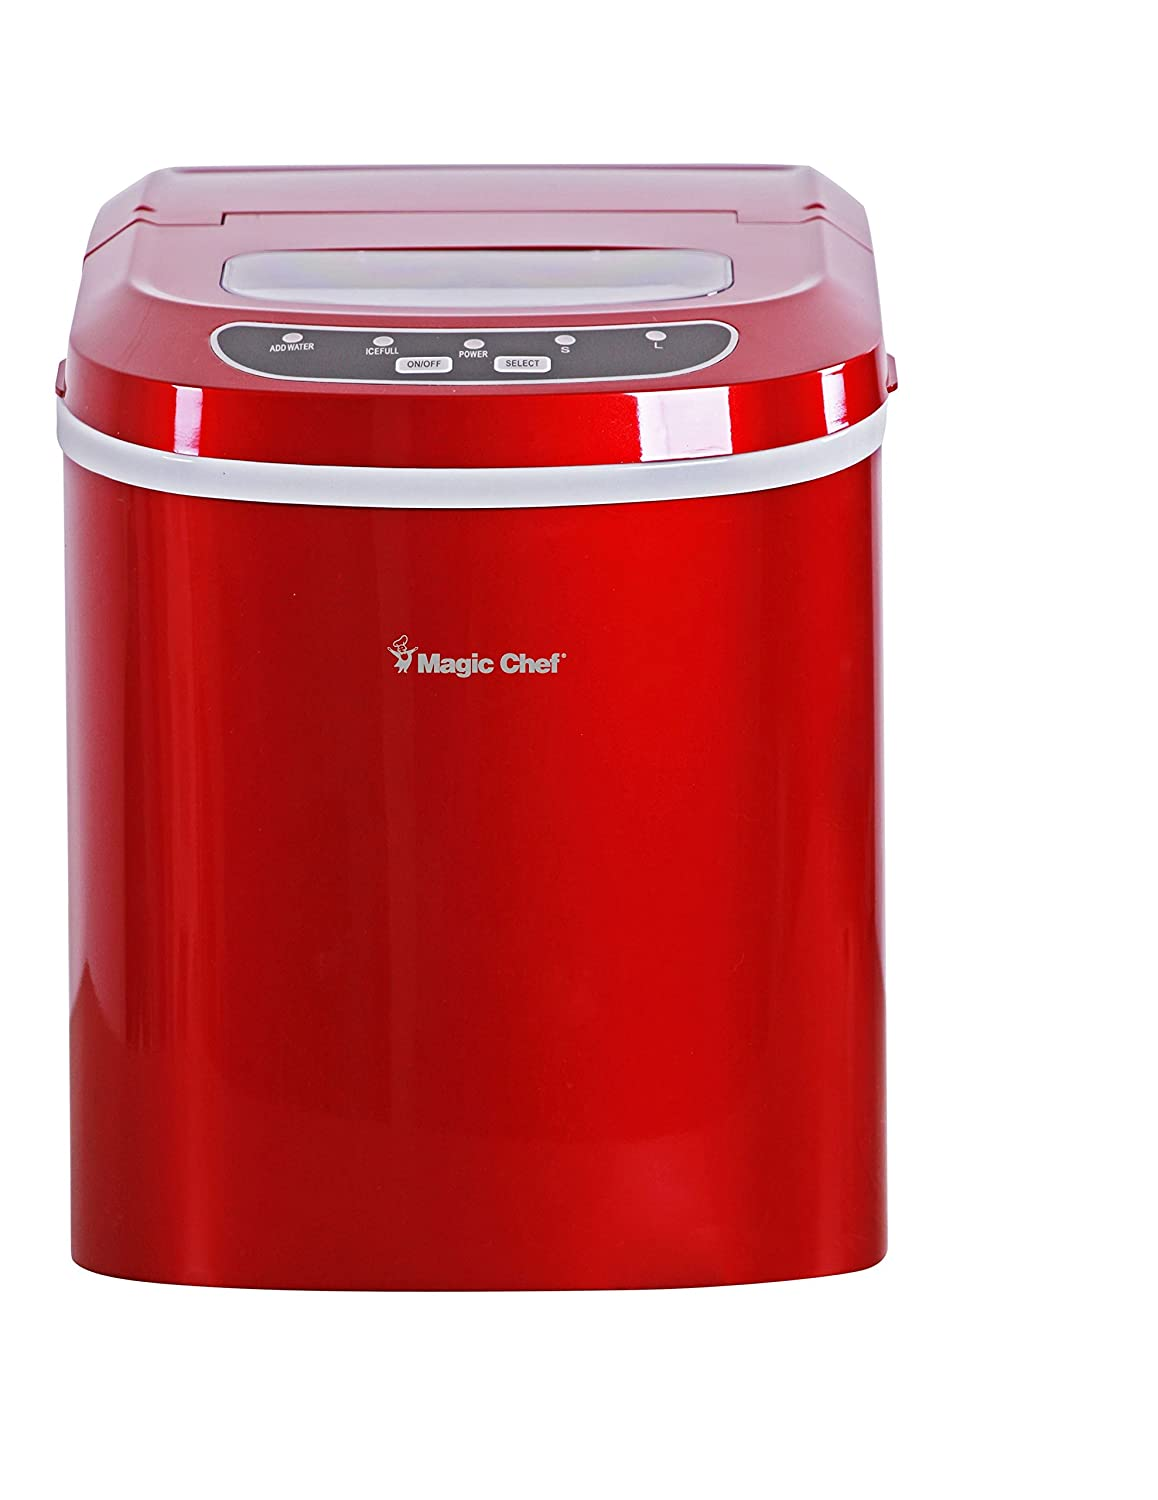 Magic Chef MCIM22R 27-Lb. Portable Red Countertop Ice Maker 27 lb,